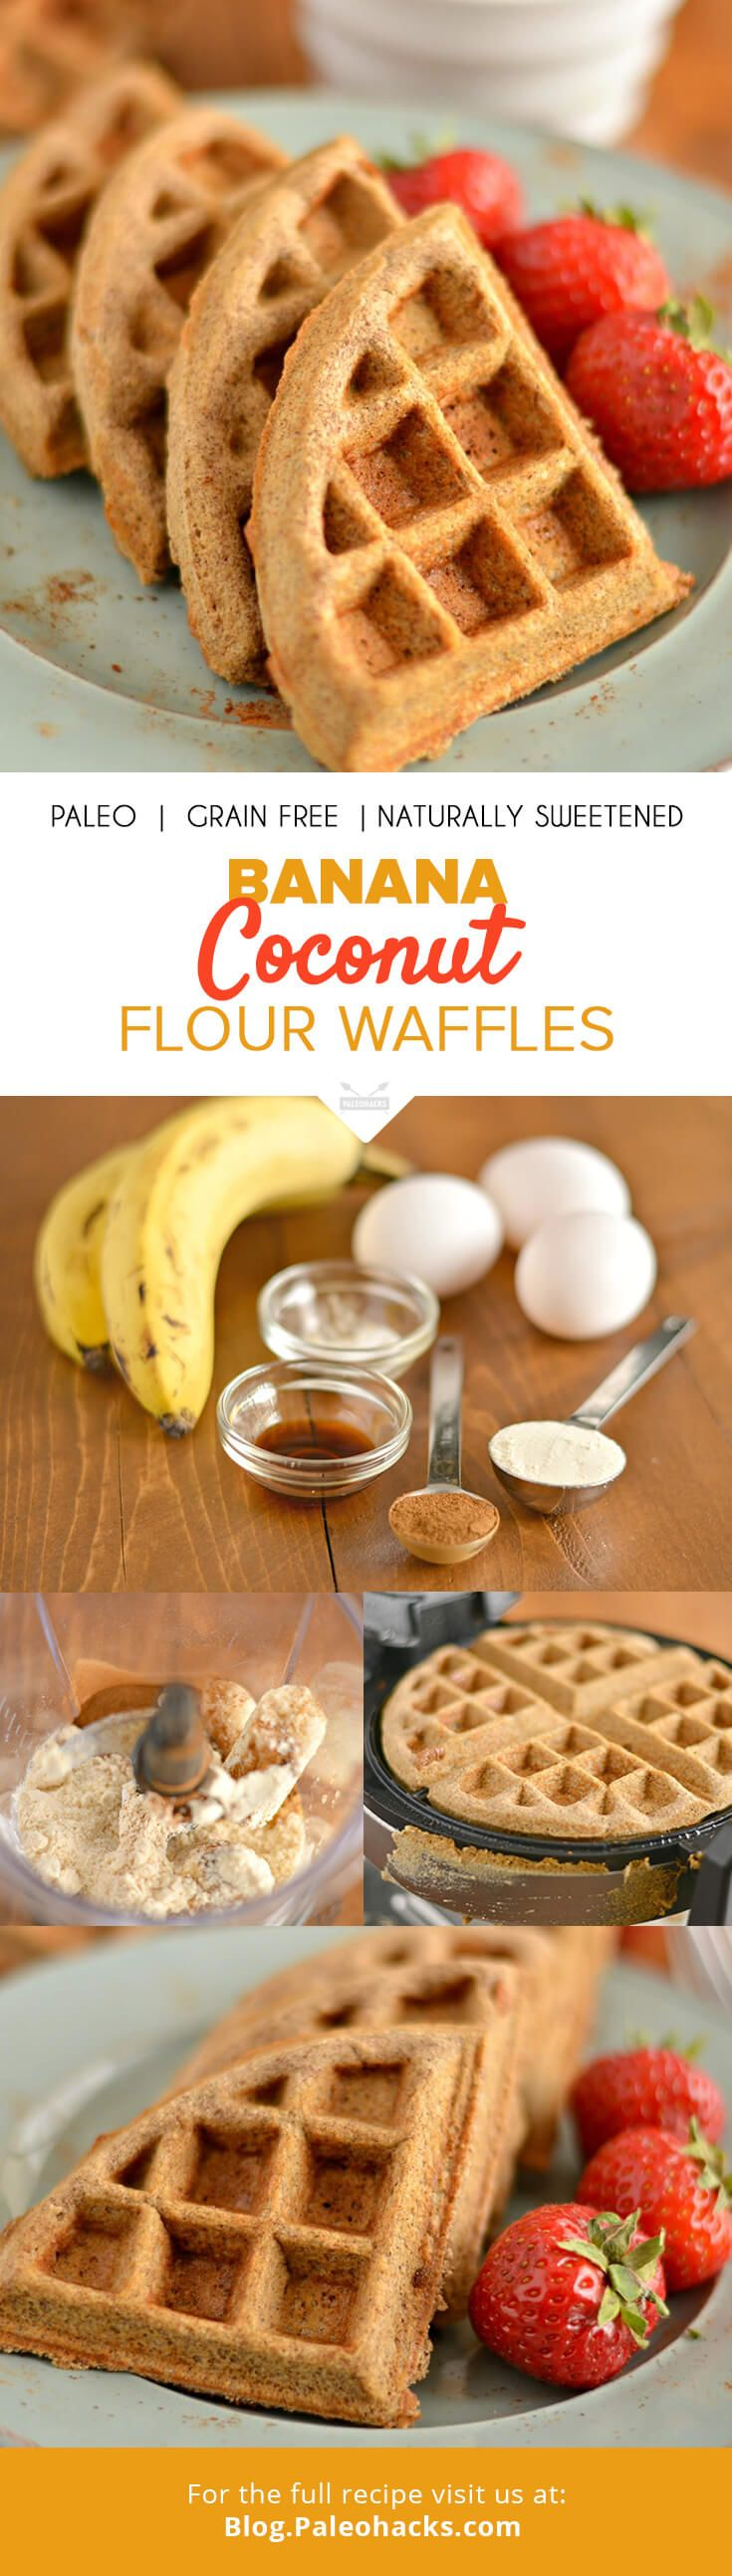 how to make waffles with coconut flour